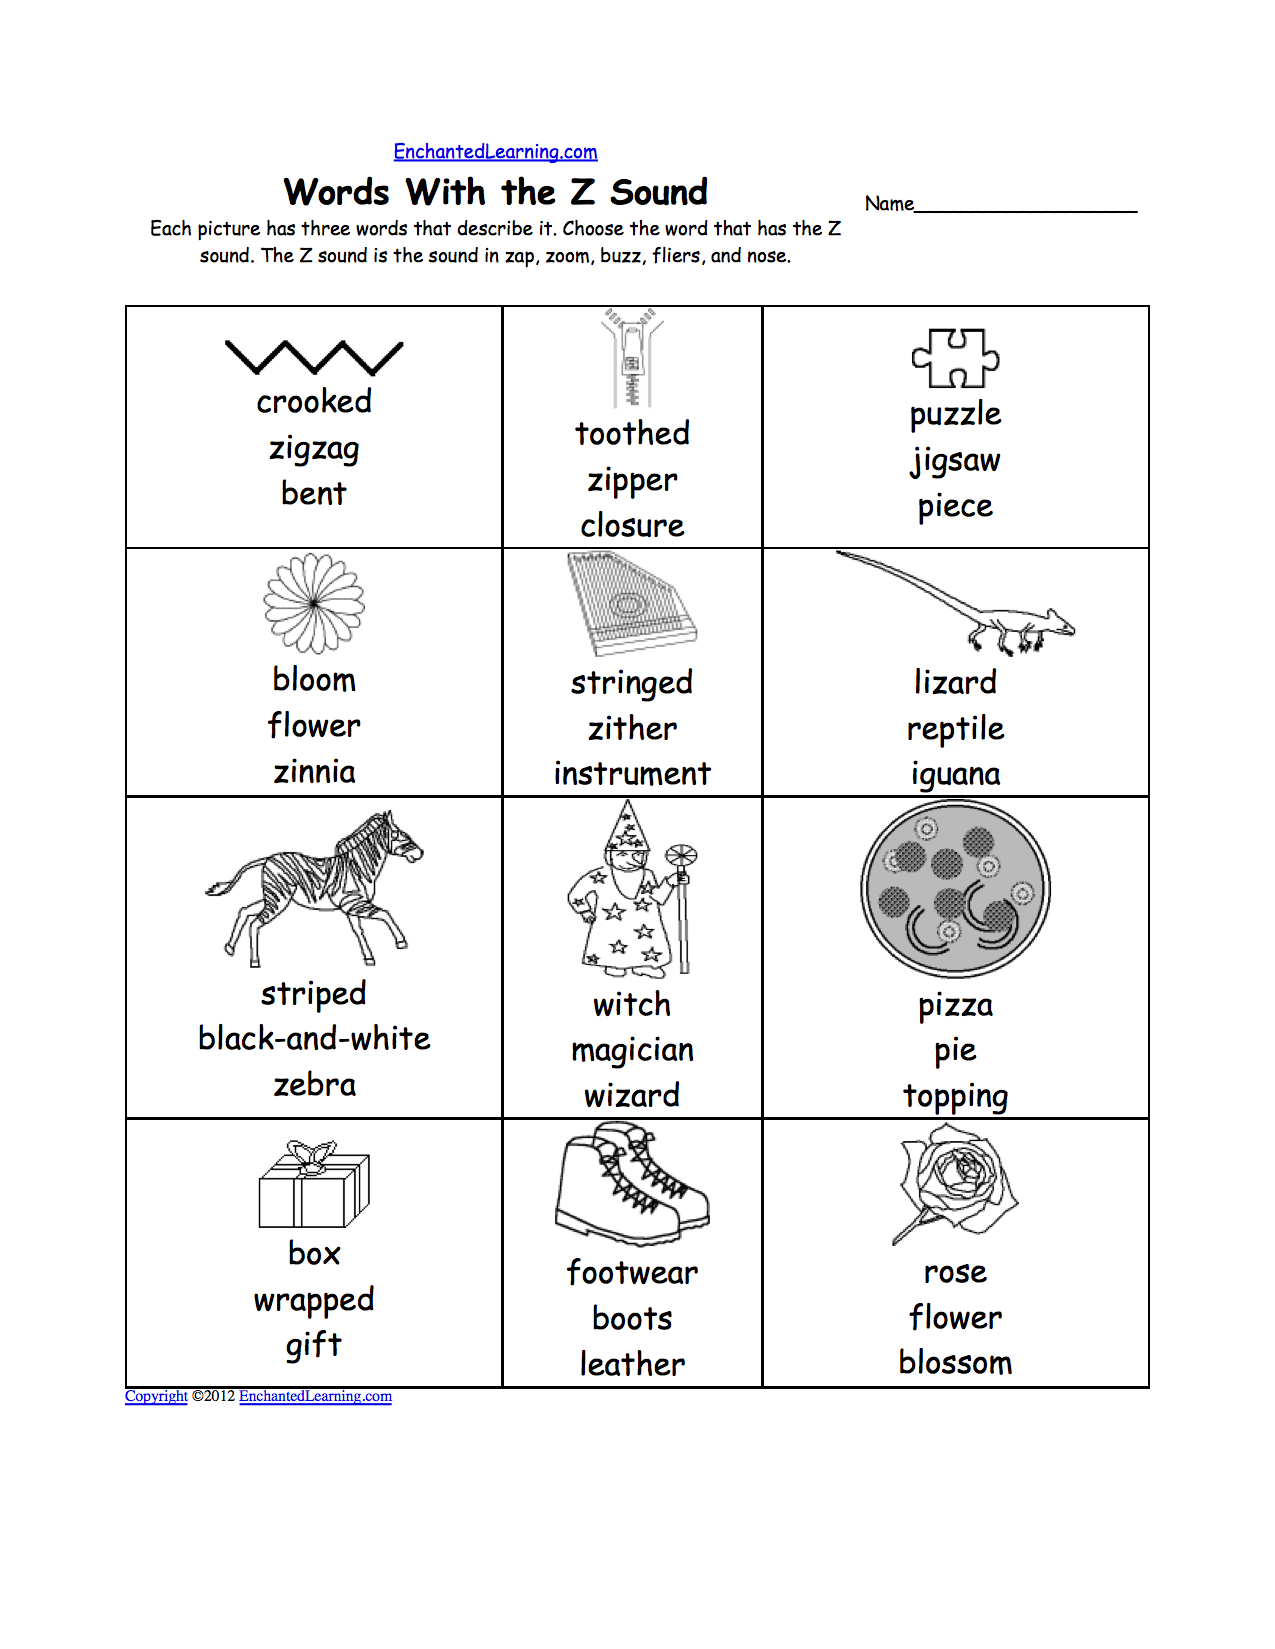 Aldiablosus  Fascinating Phonics Worksheets Multiple Choice Worksheets To Print  With Outstanding Phonics Worksheets Multiple Choice Worksheets To Print  Enchantedlearningcom With Beautiful Electron Dot Worksheet Also Sign Language Printable Worksheets In Addition Solving System Of Linear Equations By Graphing Worksheet And Snowflake Math Worksheets As Well As Metric Ruler Worksheet Additionally Vowel Blends Worksheets From Enchantedlearningcom With Aldiablosus  Outstanding Phonics Worksheets Multiple Choice Worksheets To Print  With Beautiful Phonics Worksheets Multiple Choice Worksheets To Print  Enchantedlearningcom And Fascinating Electron Dot Worksheet Also Sign Language Printable Worksheets In Addition Solving System Of Linear Equations By Graphing Worksheet From Enchantedlearningcom